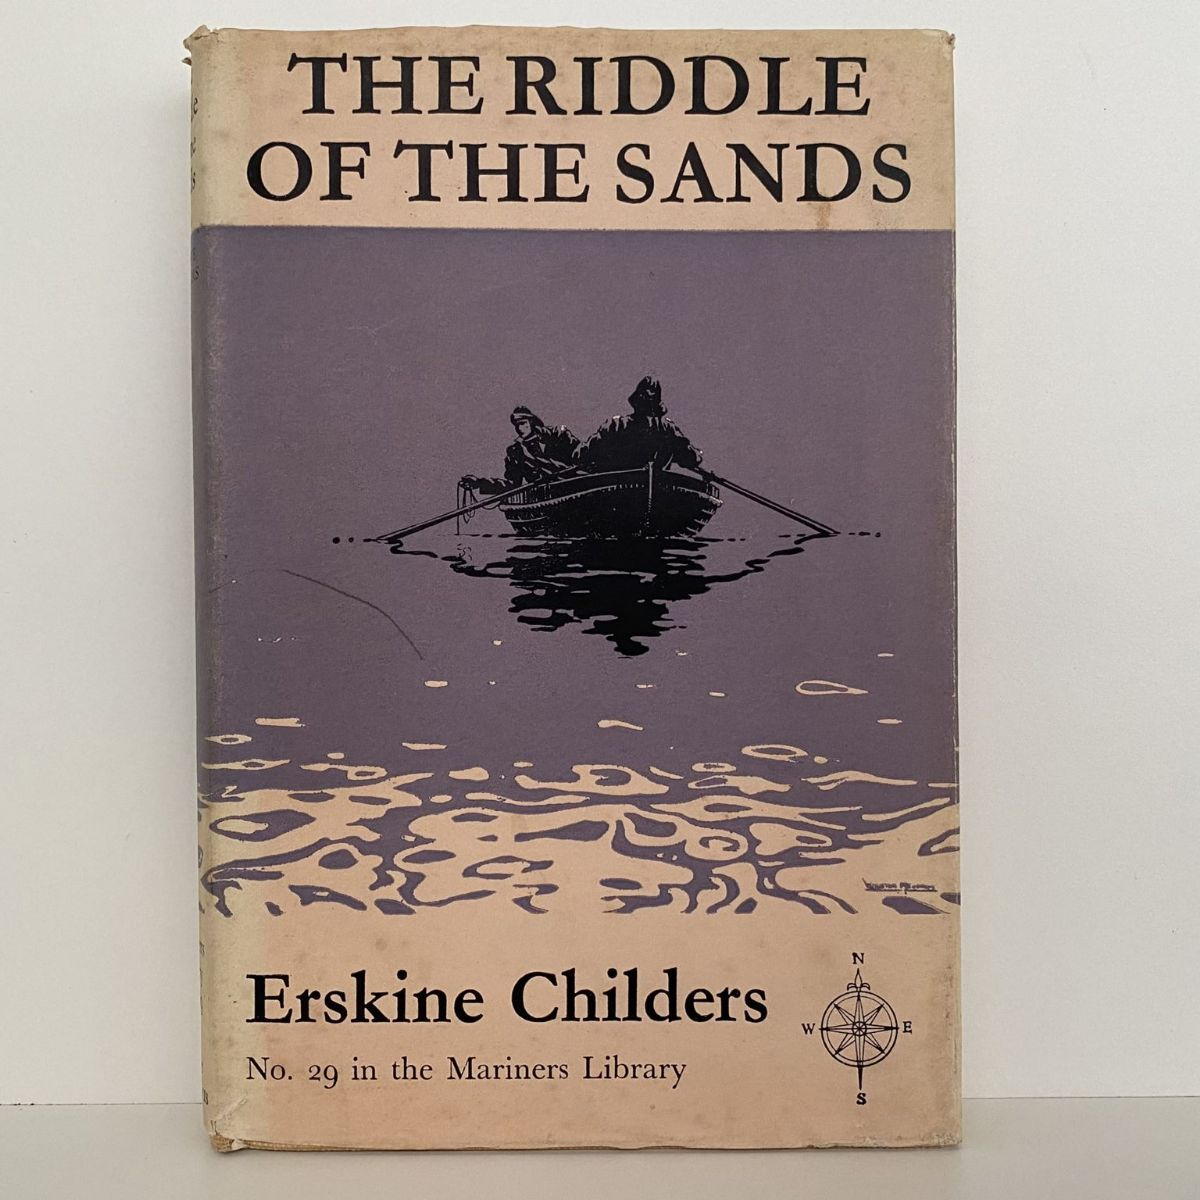 THE RIDDLE OF THE SANDS